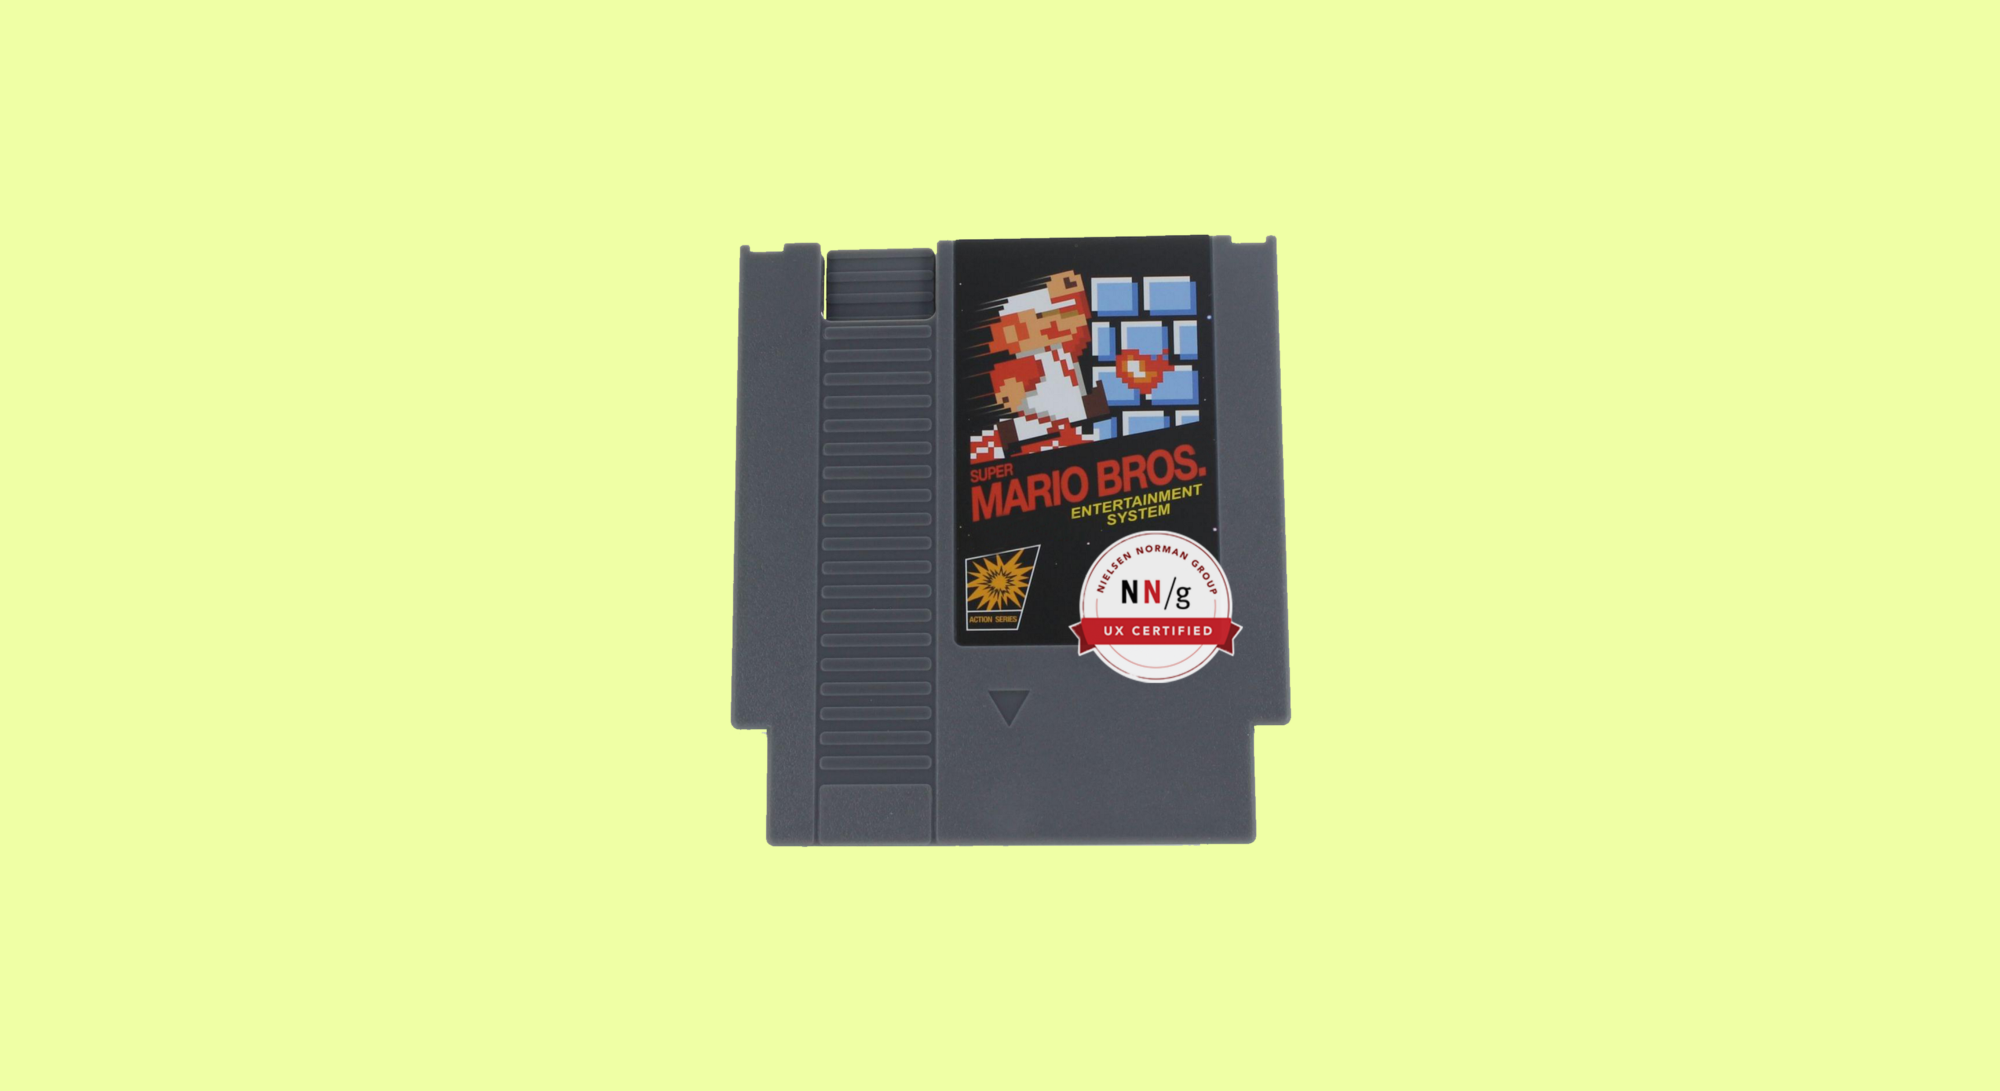 Super Mario Bros Cartridge with an super imposed NN/g Certification sticker